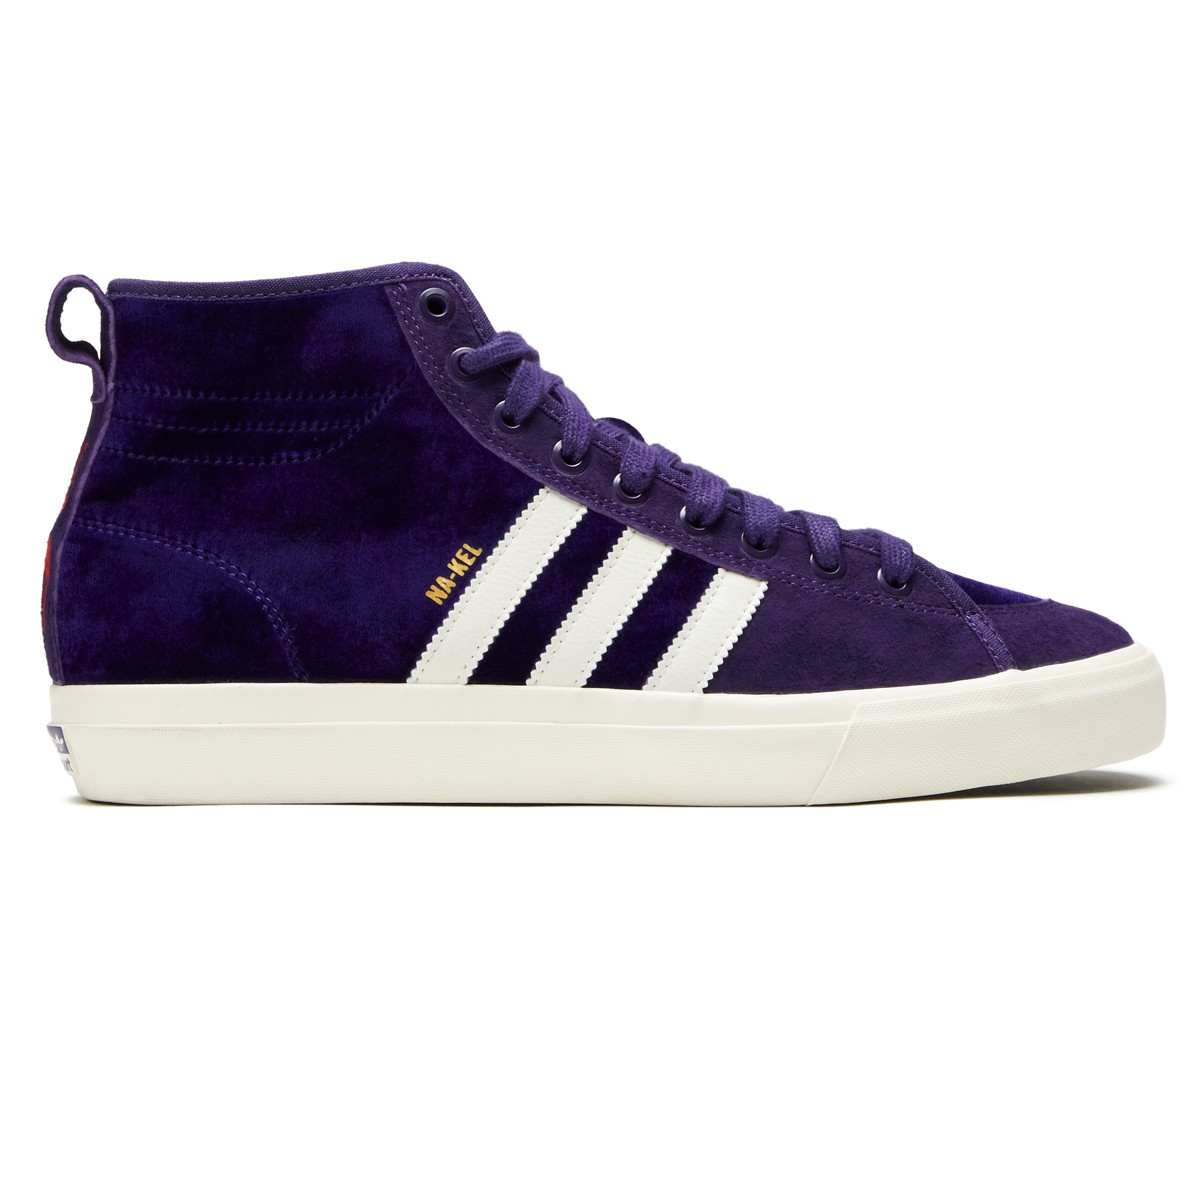 official photos 32137 8fae0 Adidas Matchcourt High RX Na-kel Shoes - Purple Cream White Gold Metallic